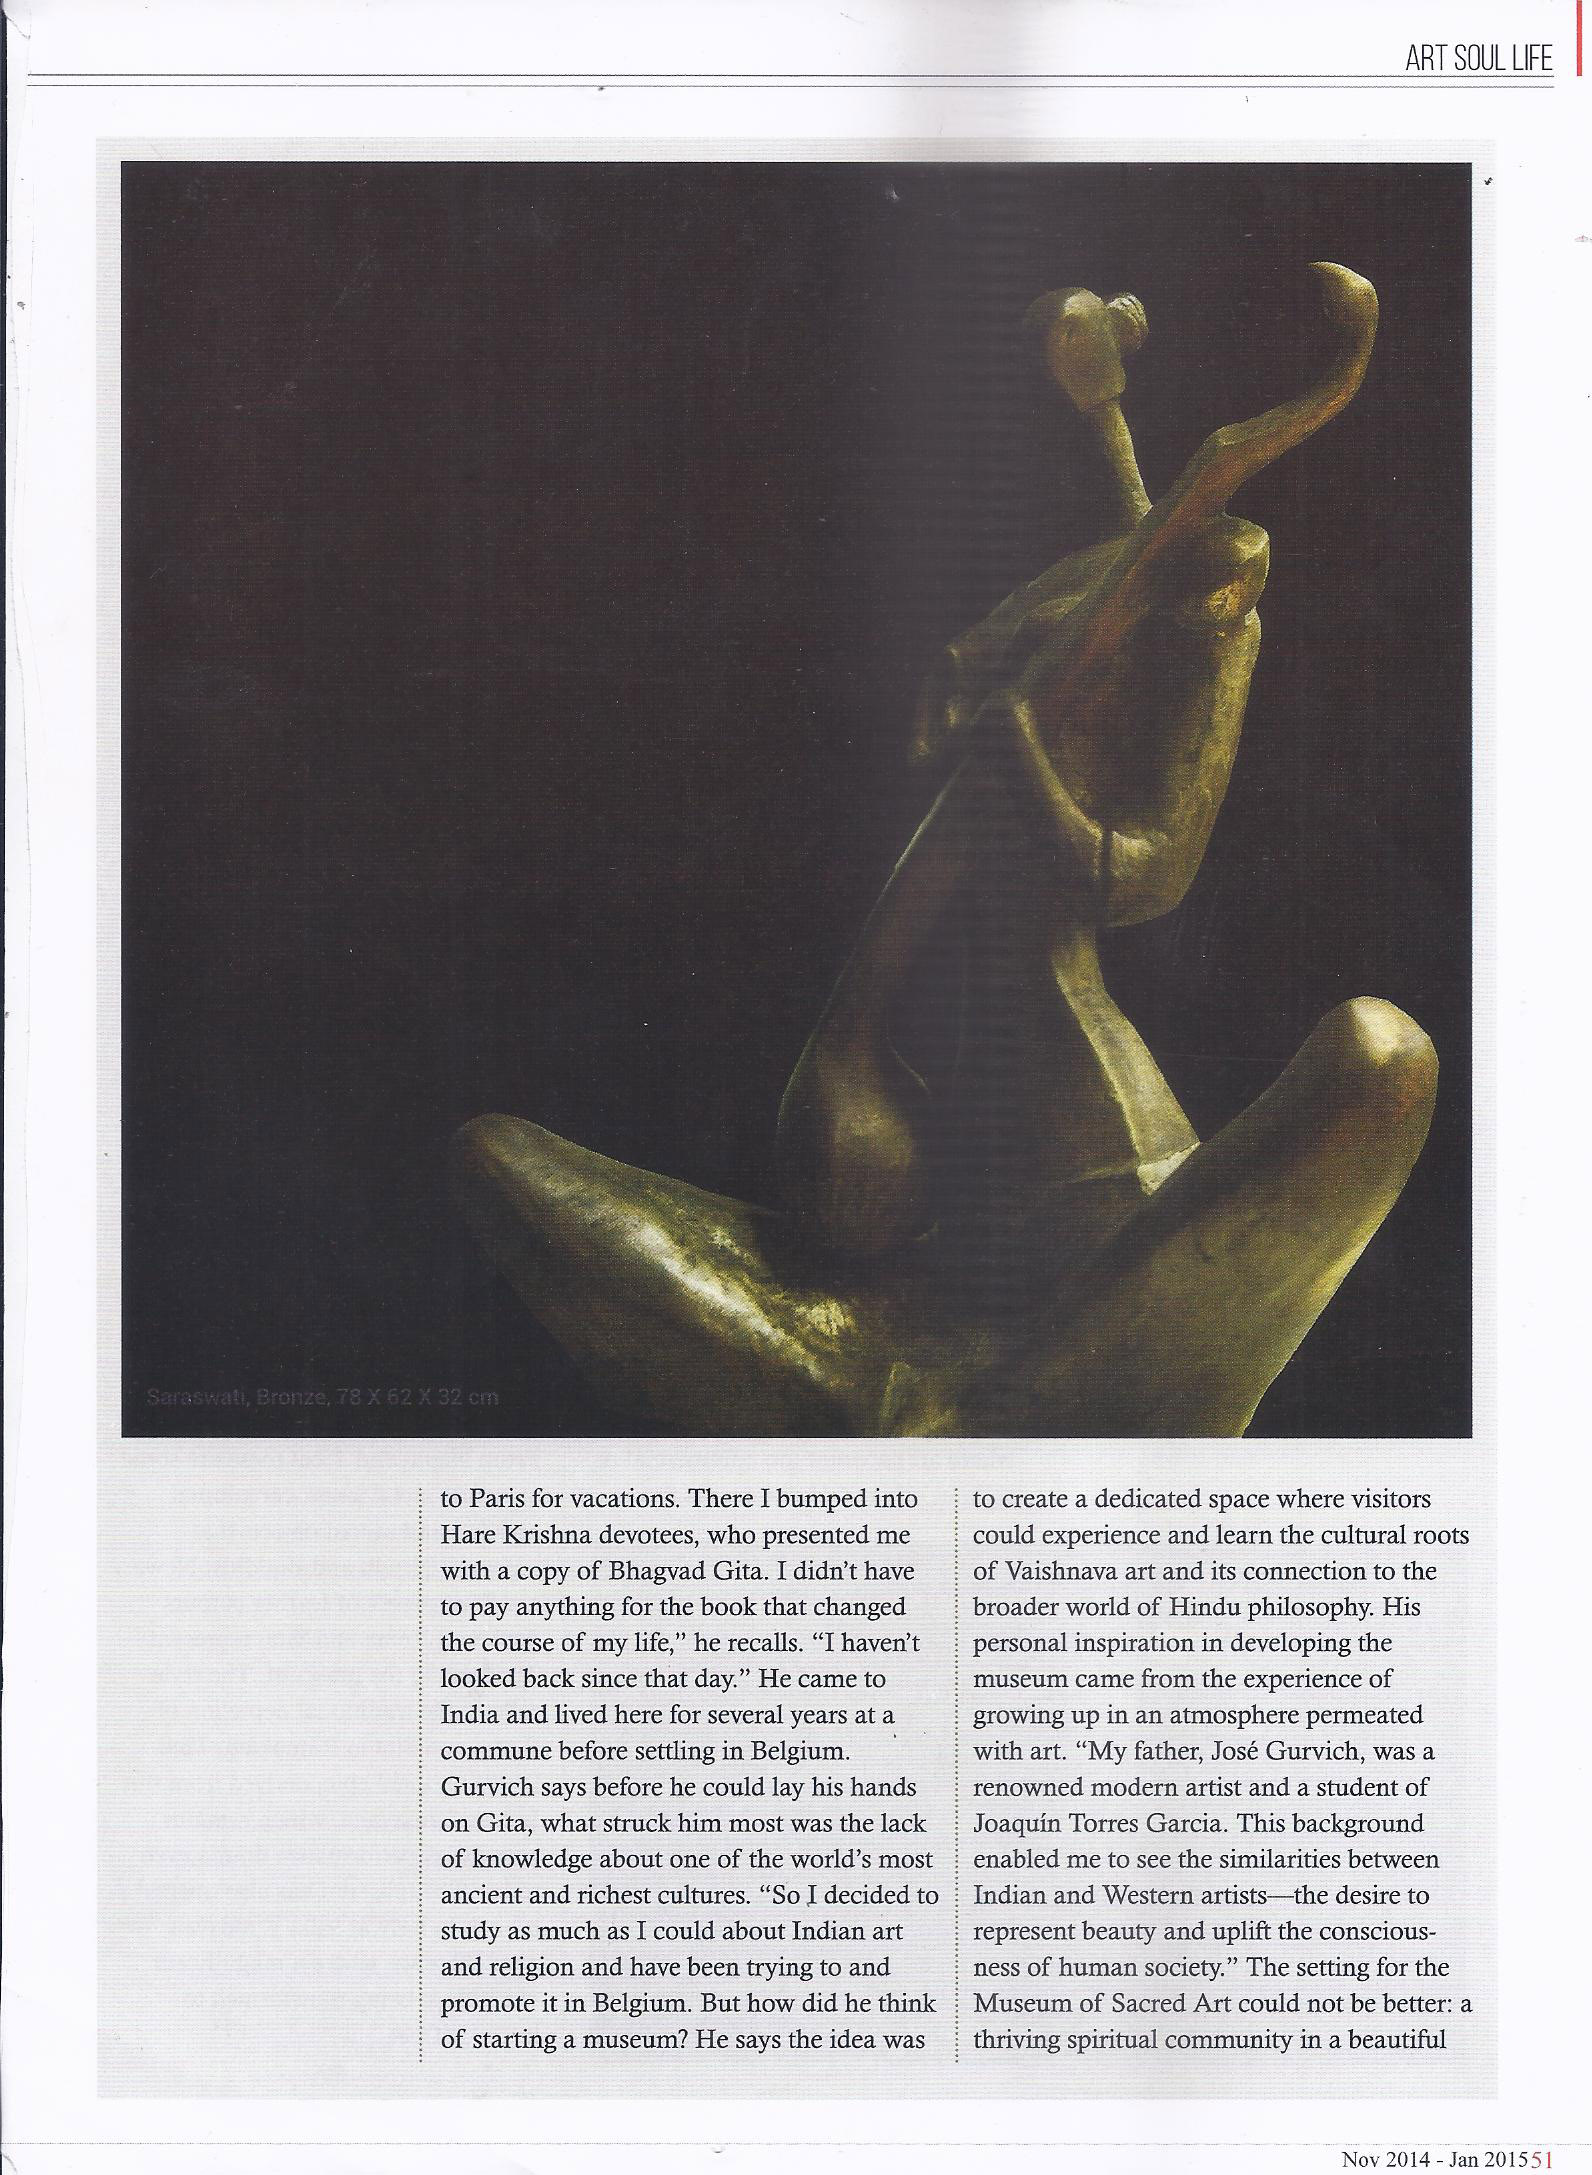 Art Soul Life (National Edition November 2014 - January 2015 Issue)- For the love of god Pg-6